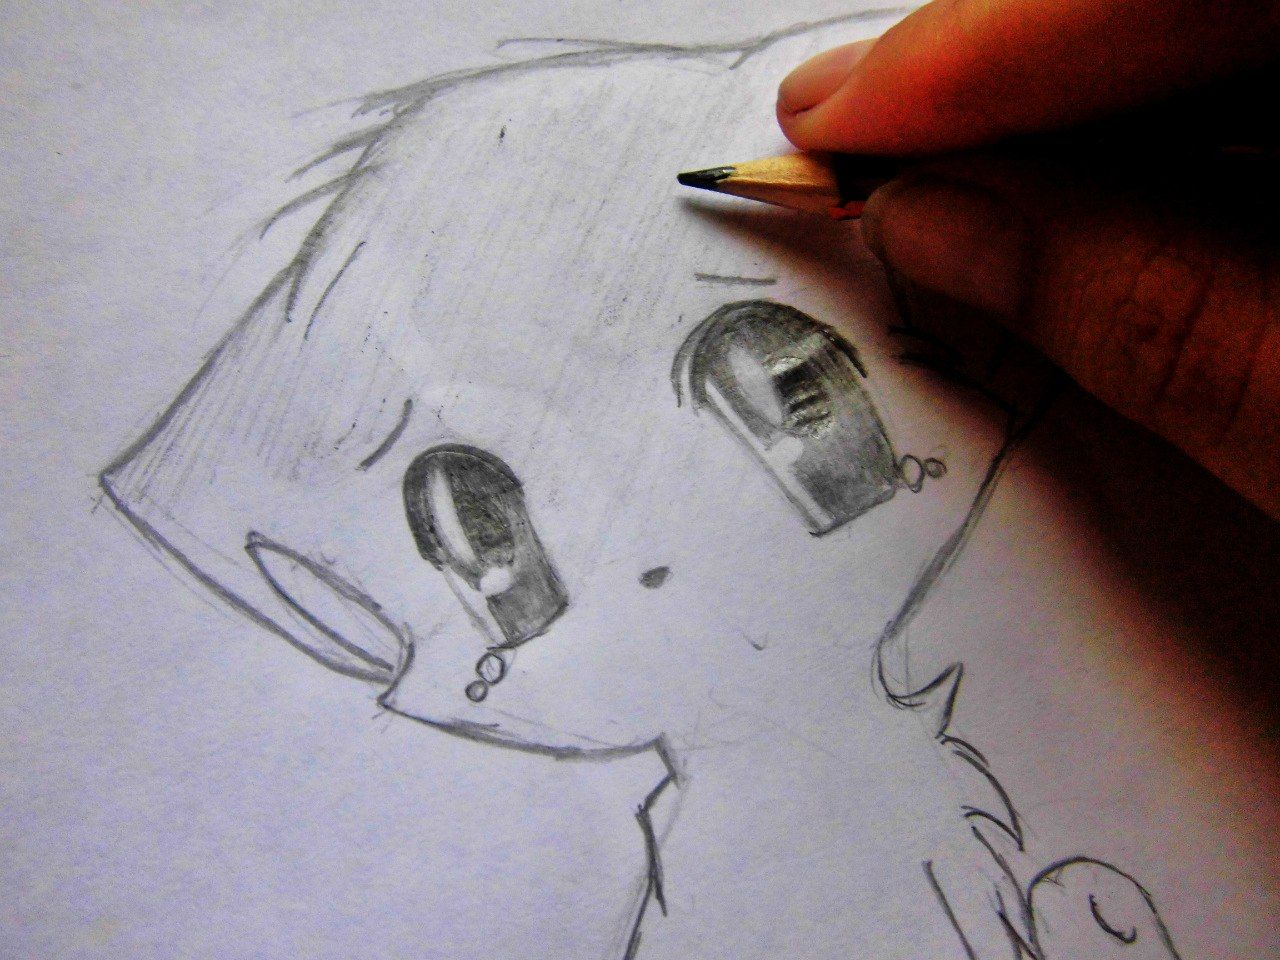 How to draw Naruto with a pencil on paper 7